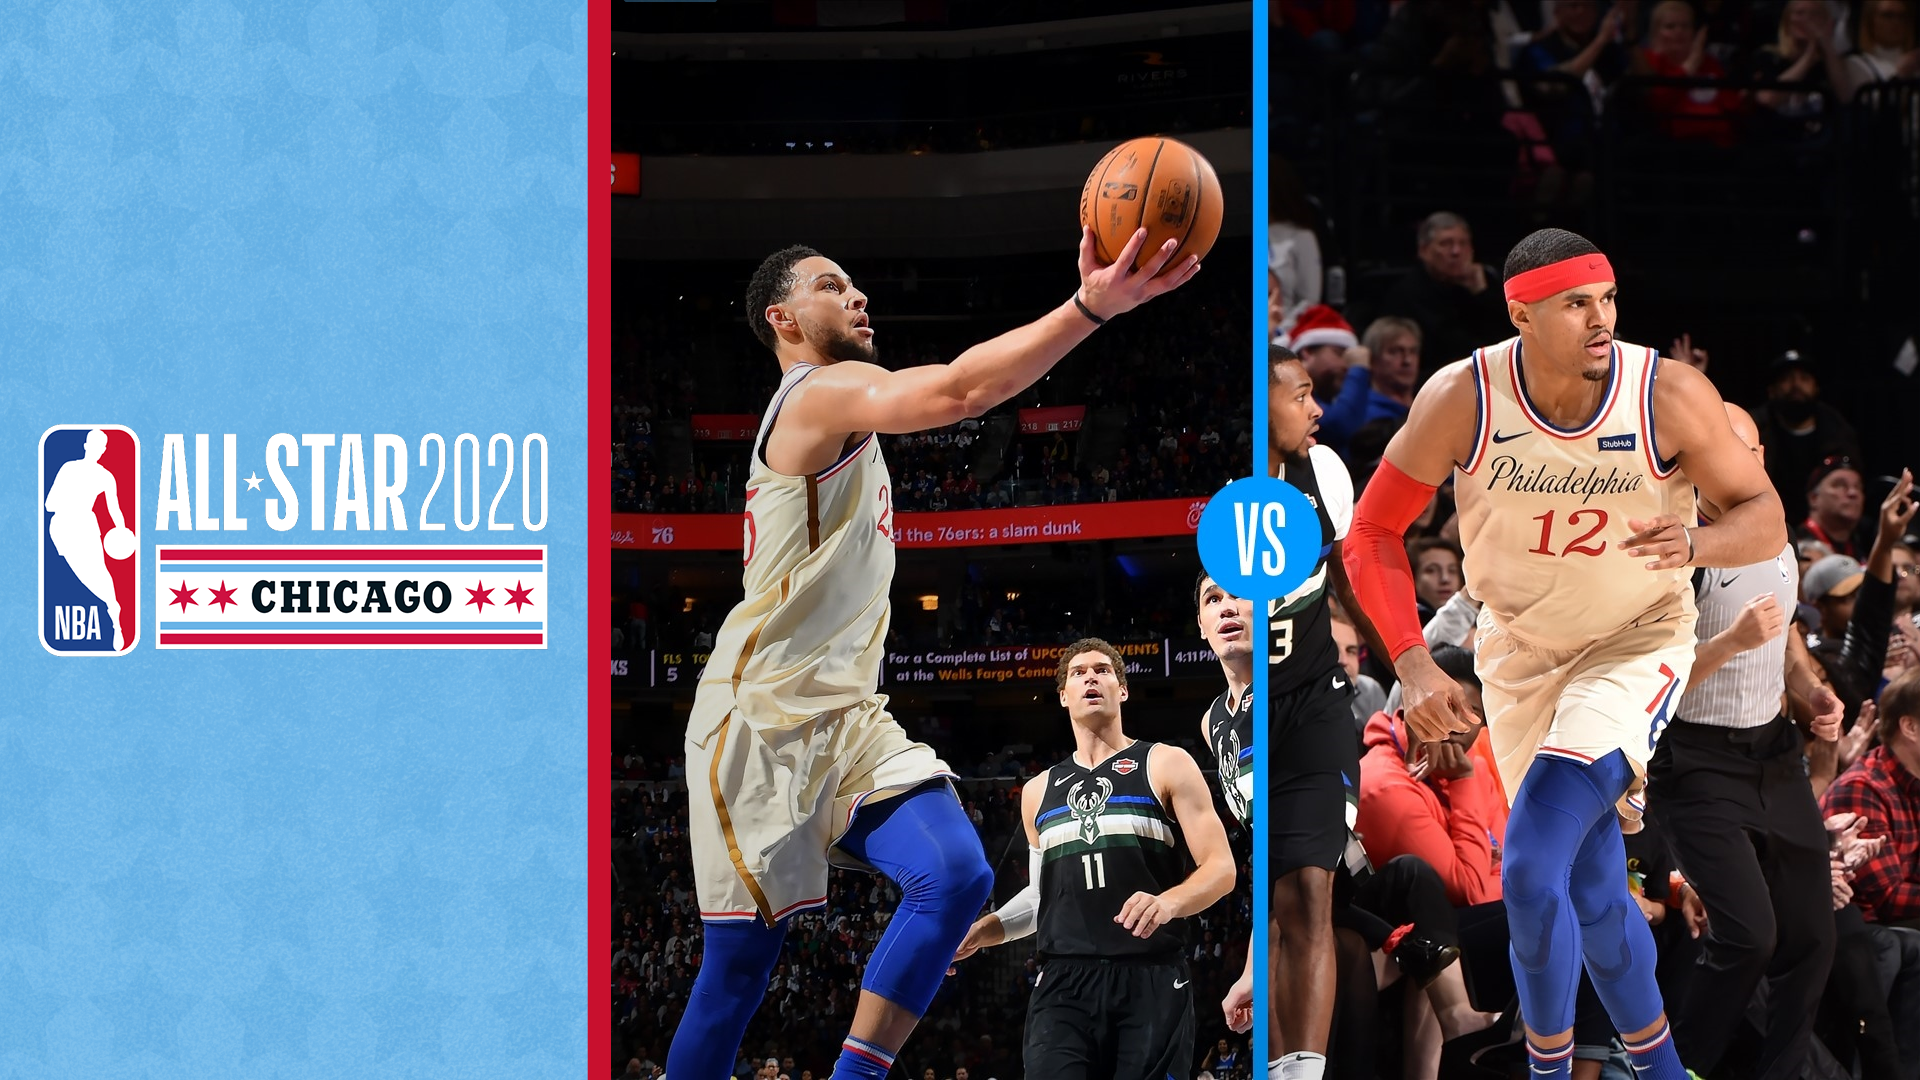 Nba All Star Game 2020 Should Ben Simmons Or Tobias